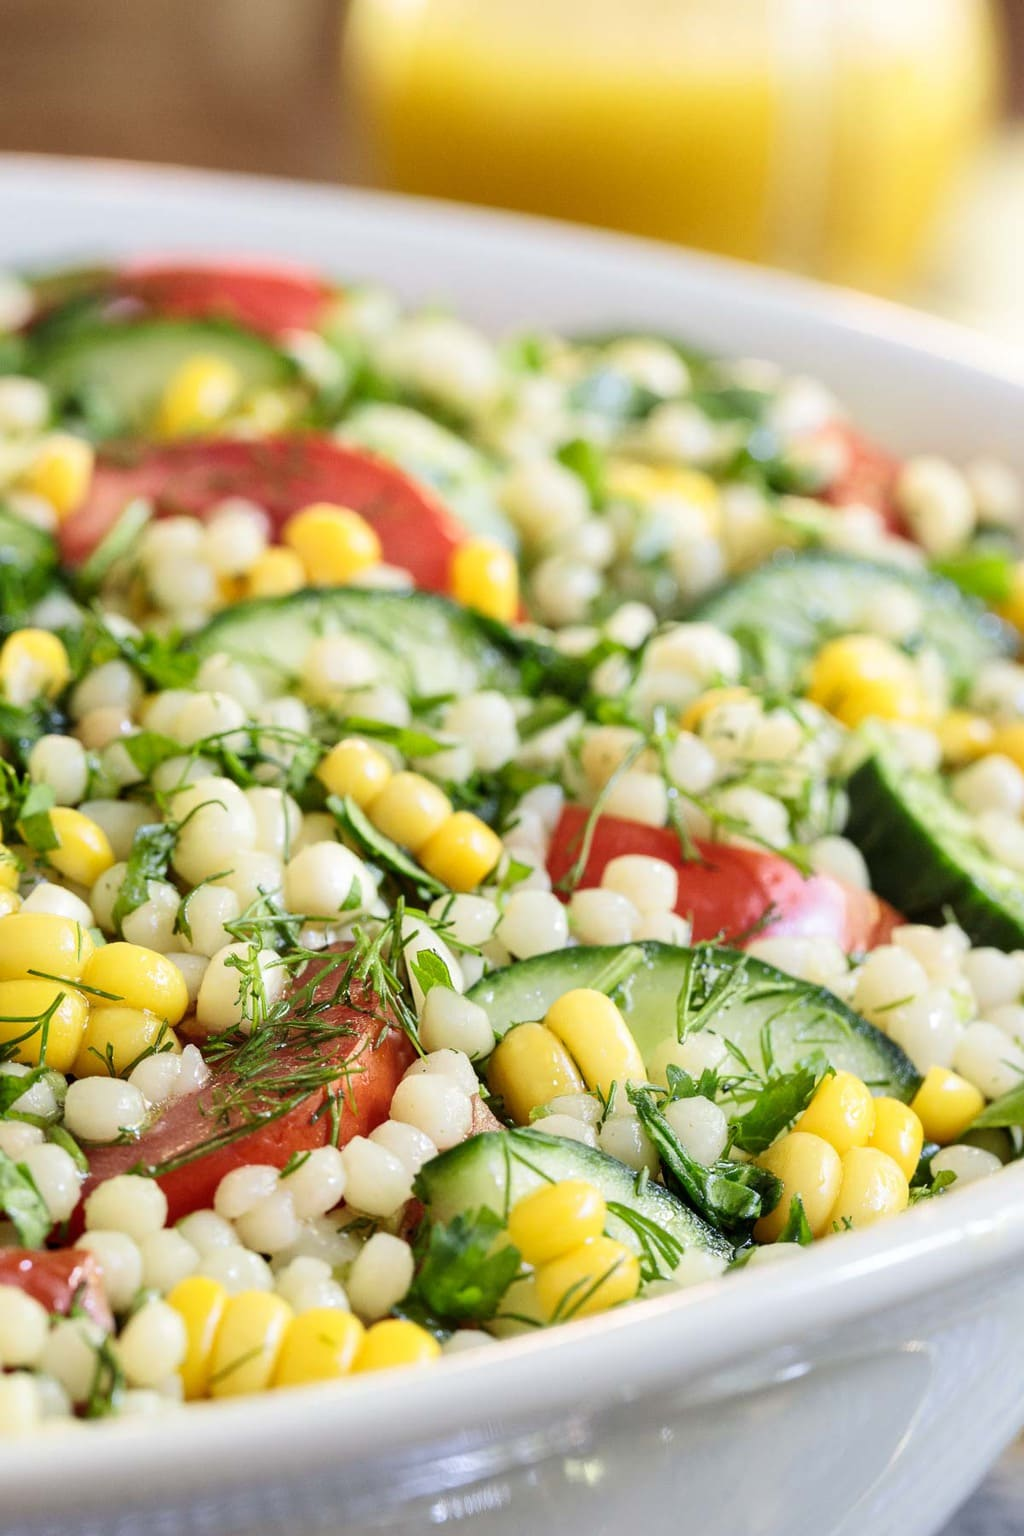 Ultra closeup photo of a Mediterranean Couscous Salad in a white serving bowl.